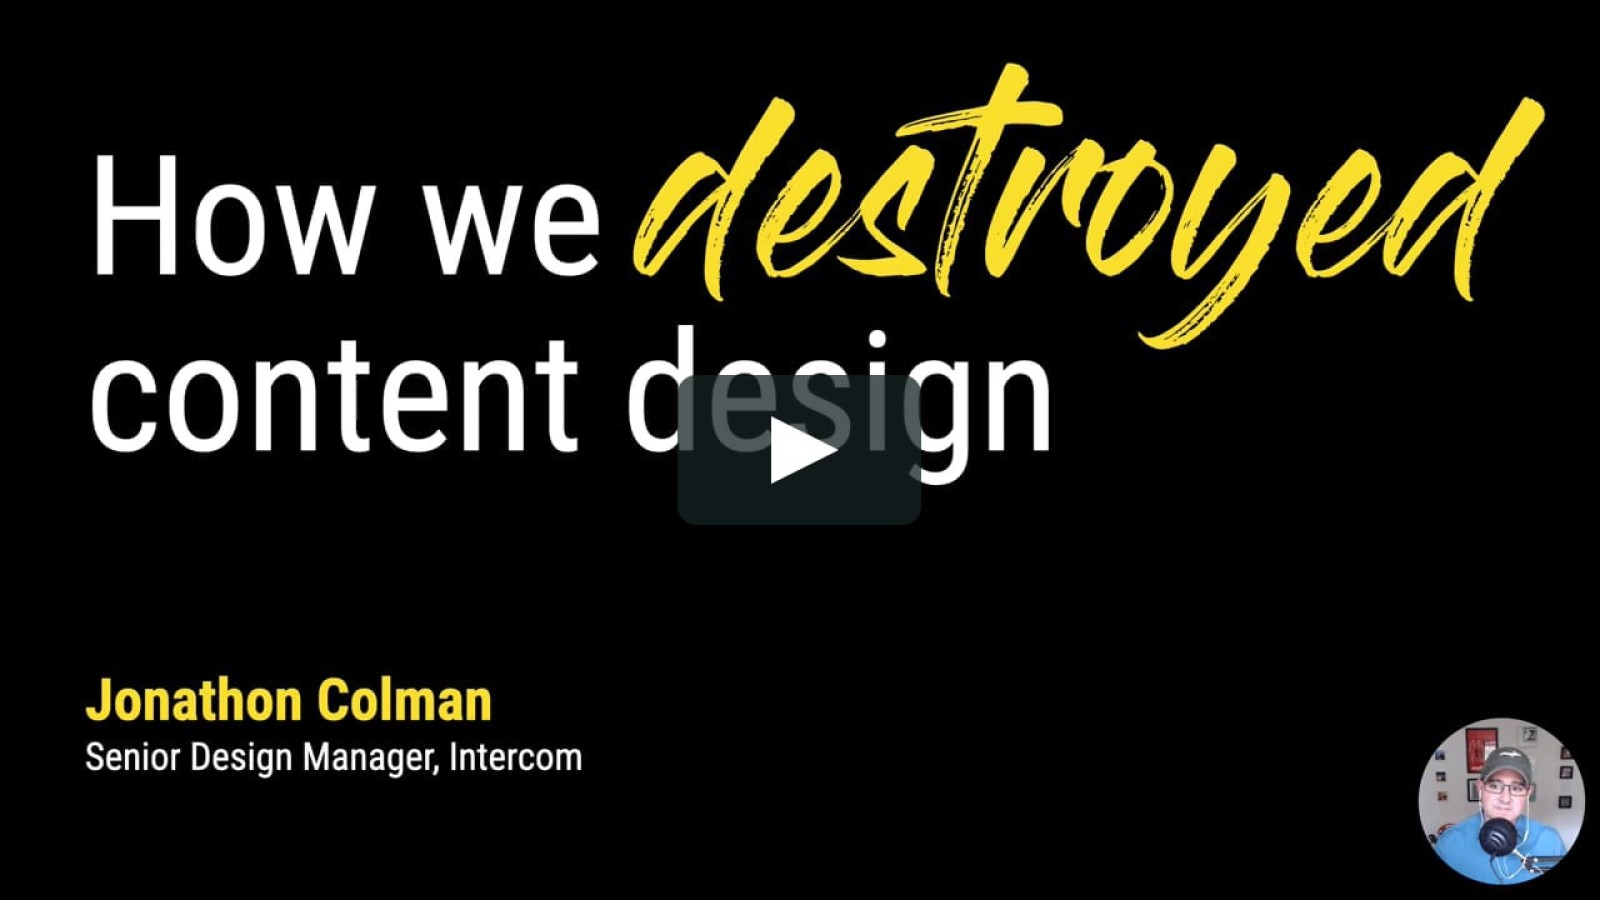 Keynote: How we destroyed content design